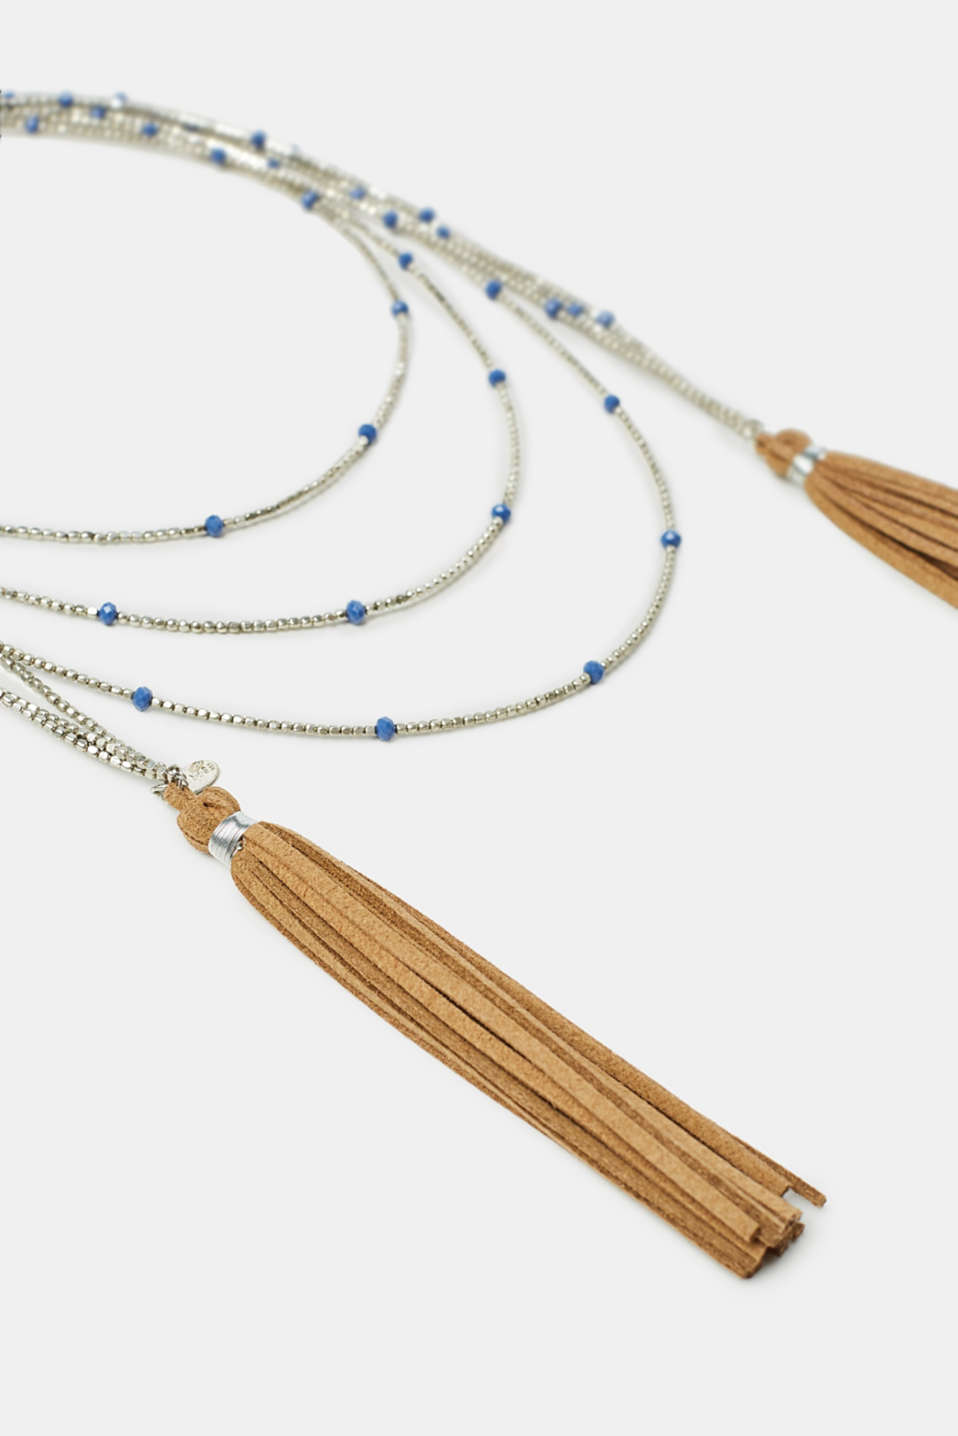 Beaded necklace with faux leather tassels